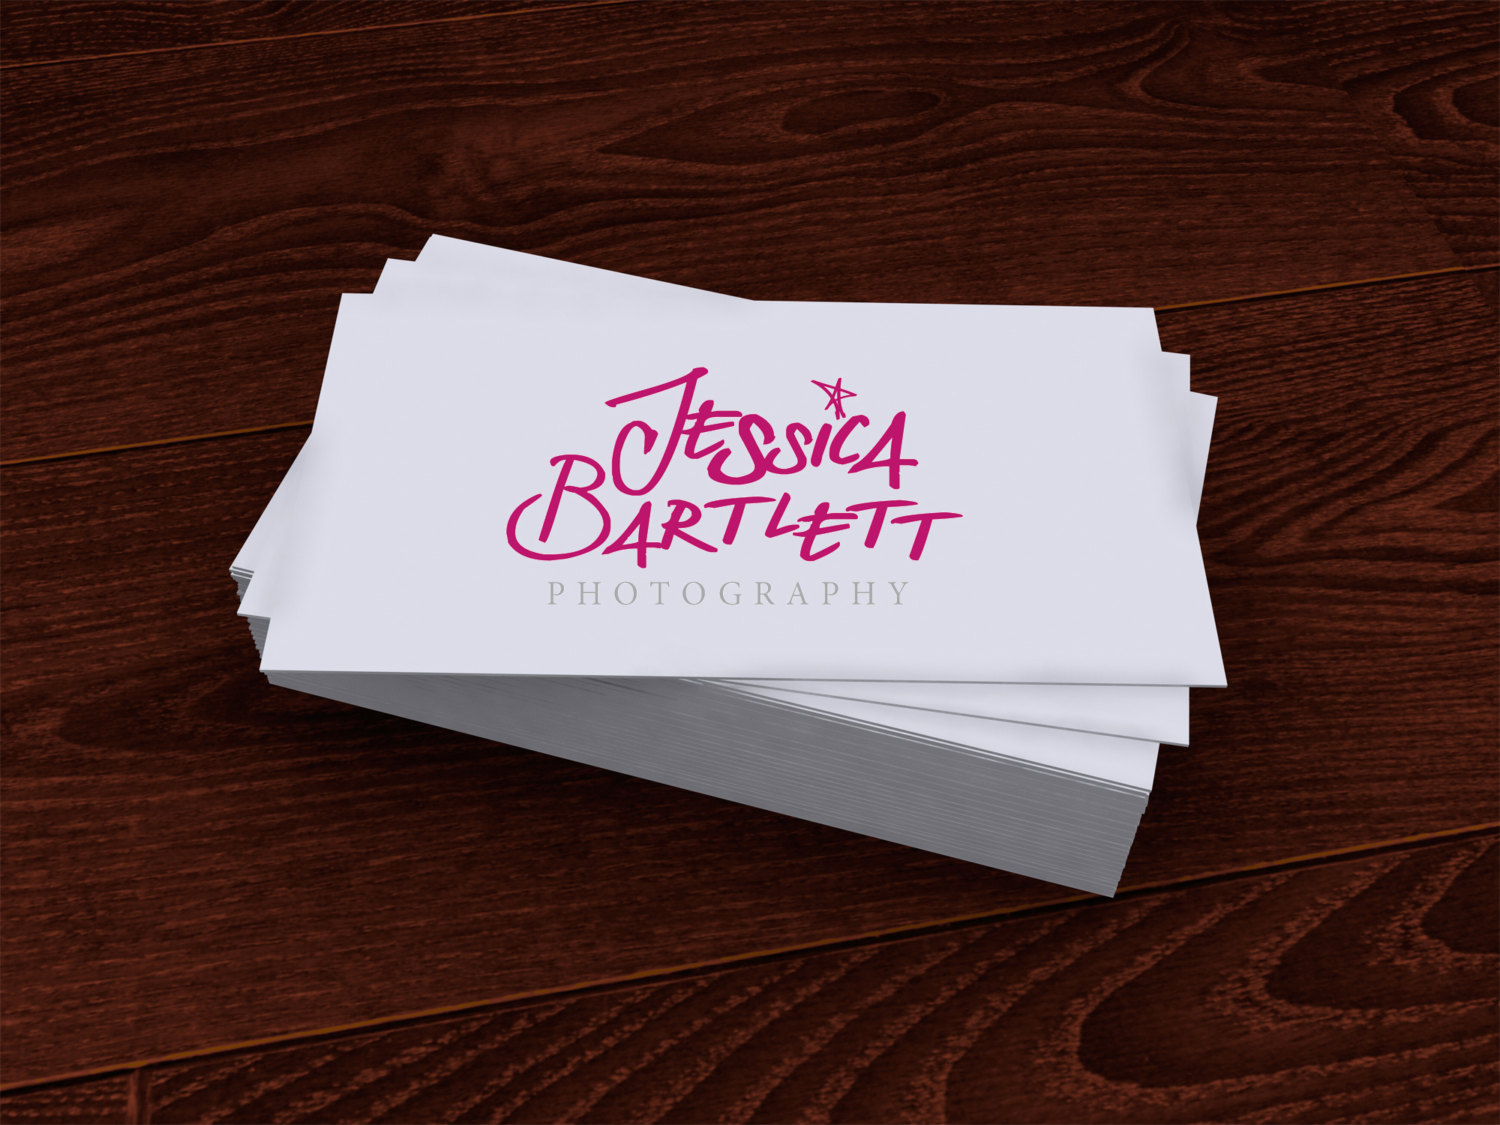 What font is JESSICA BARTLETT?